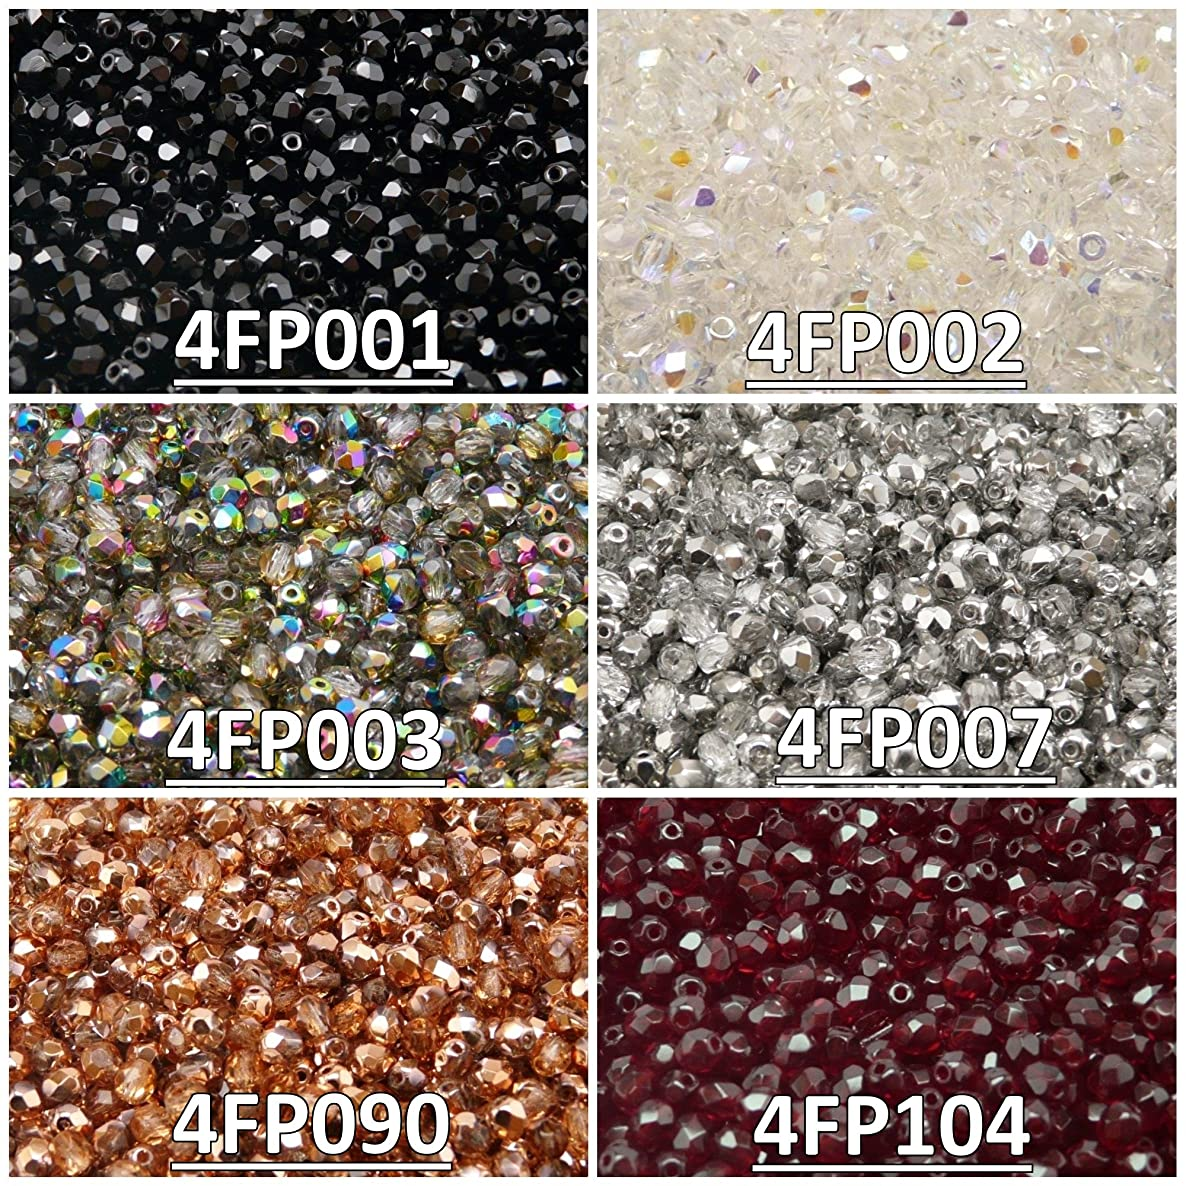 600 Beads 6 Colors Czech Fire-Polished Glass Beads Round 4 mm, Set 431 (4FP001 4FP002 4FP003 4FP007 4FP090 4FP104)